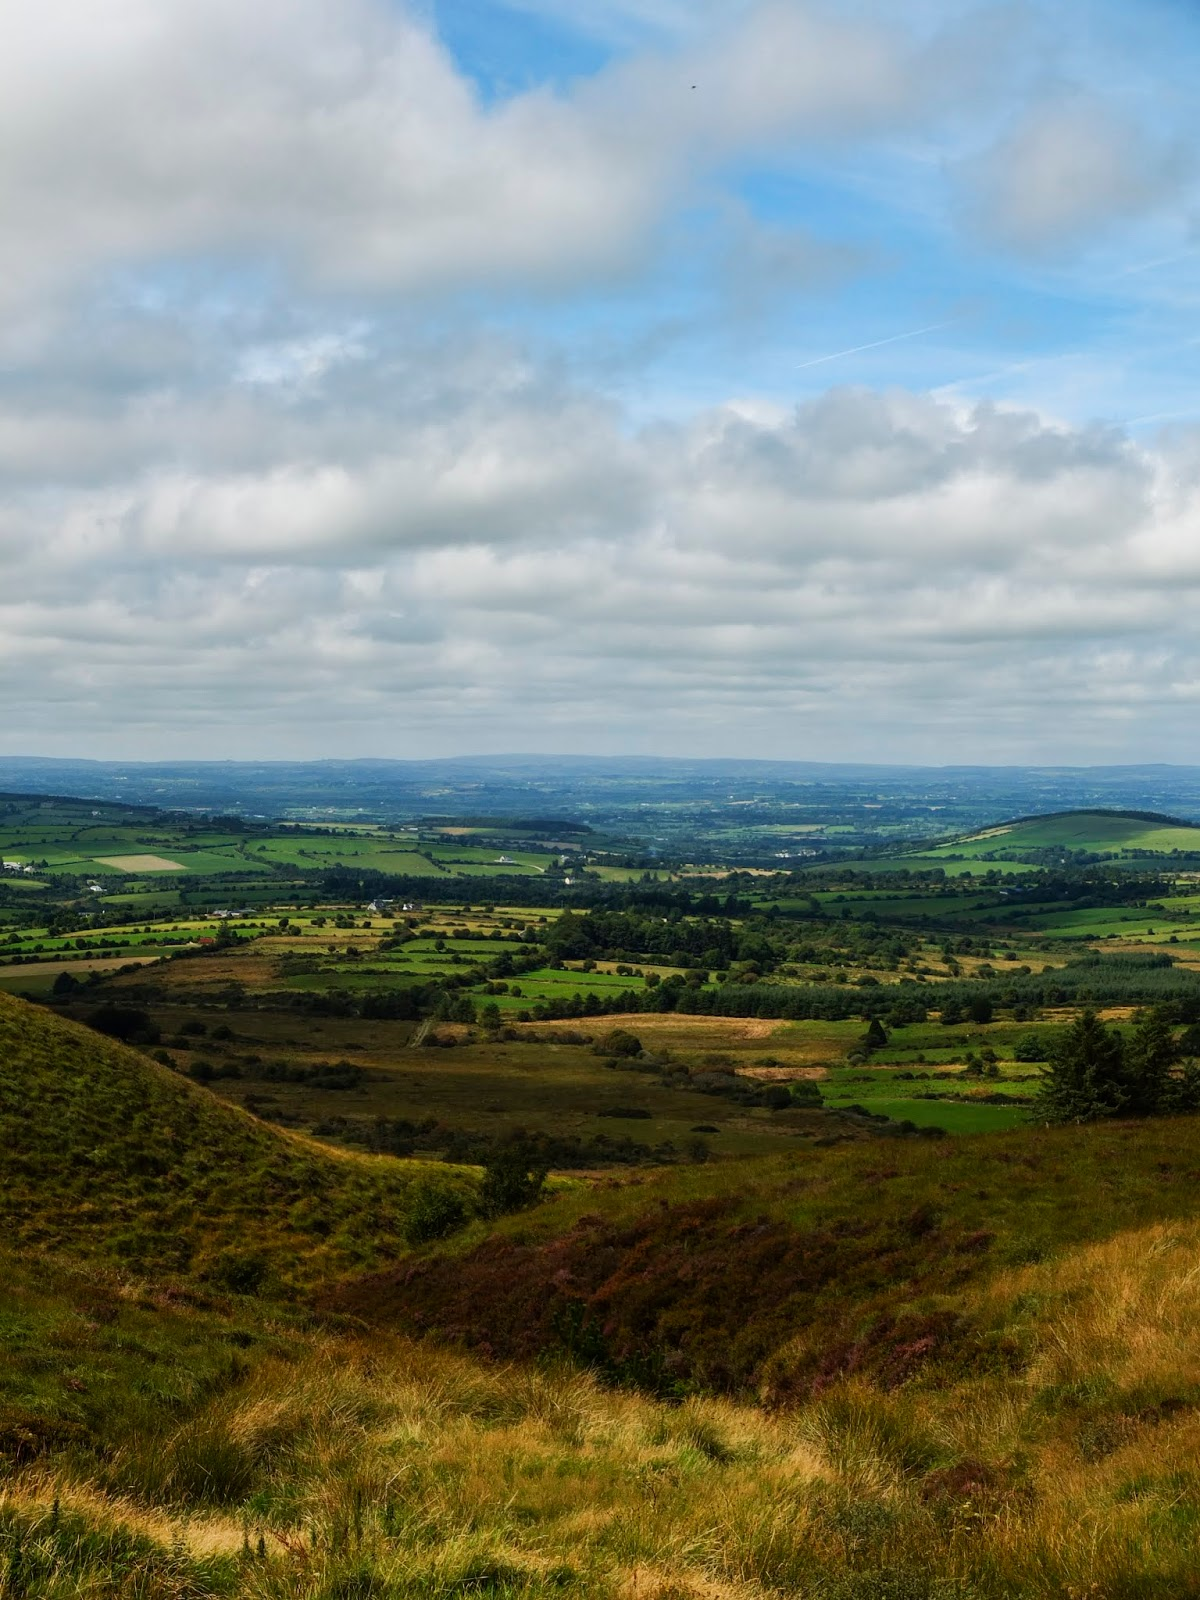 A mountain valley in North County Cork pictured on a sunny day with clouds.